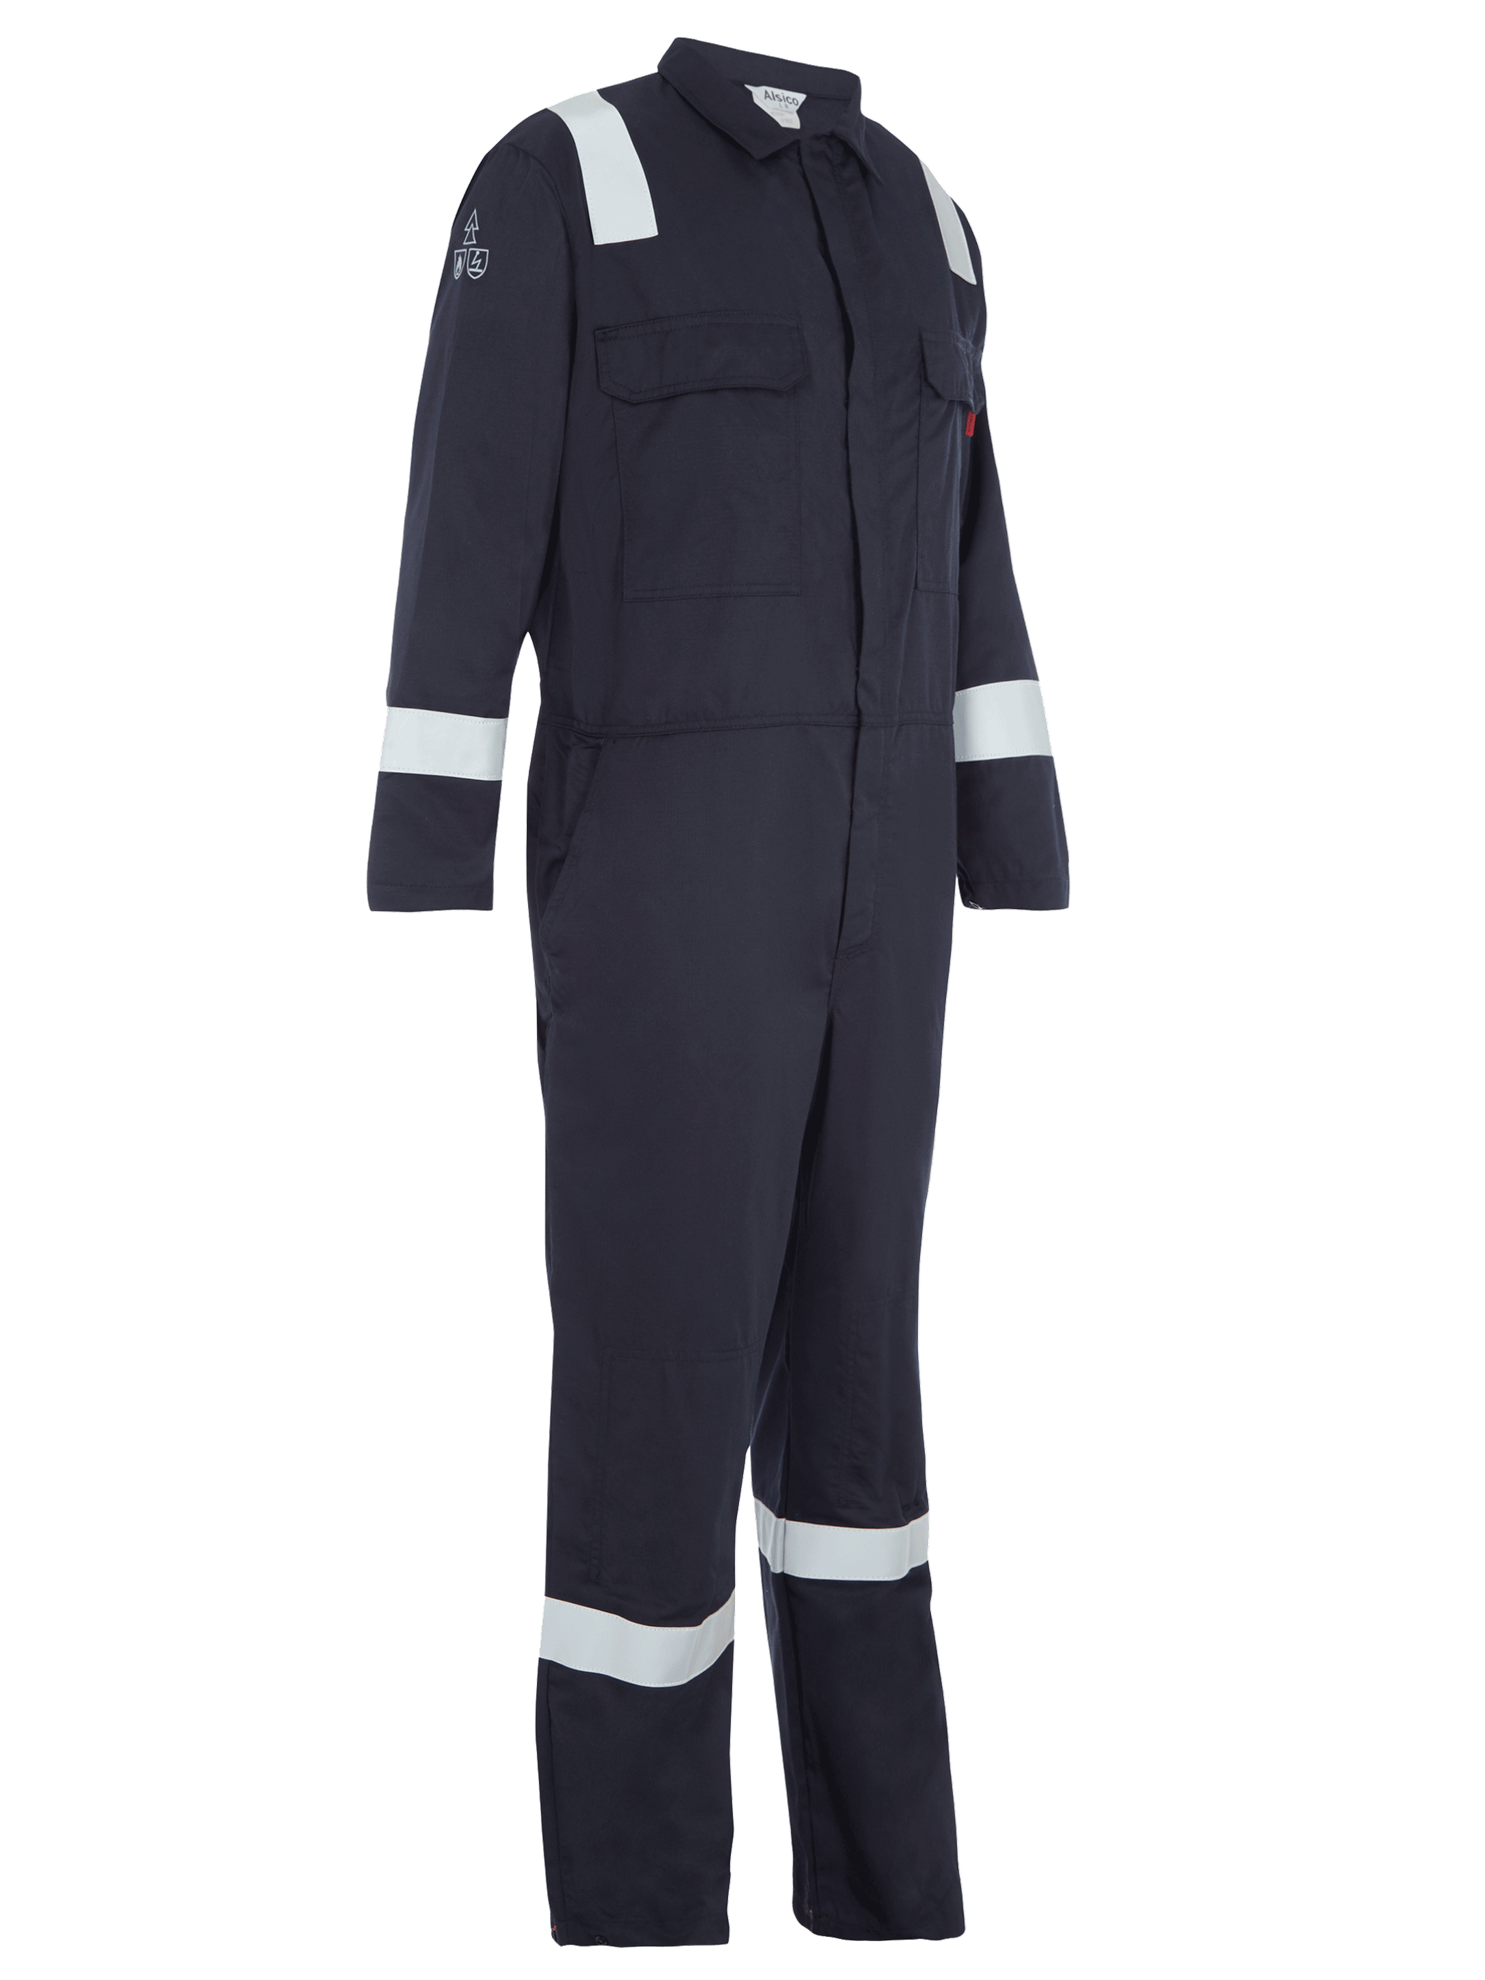 Picture of Coverall made from Nomex® Comfort Ripstop - Navy